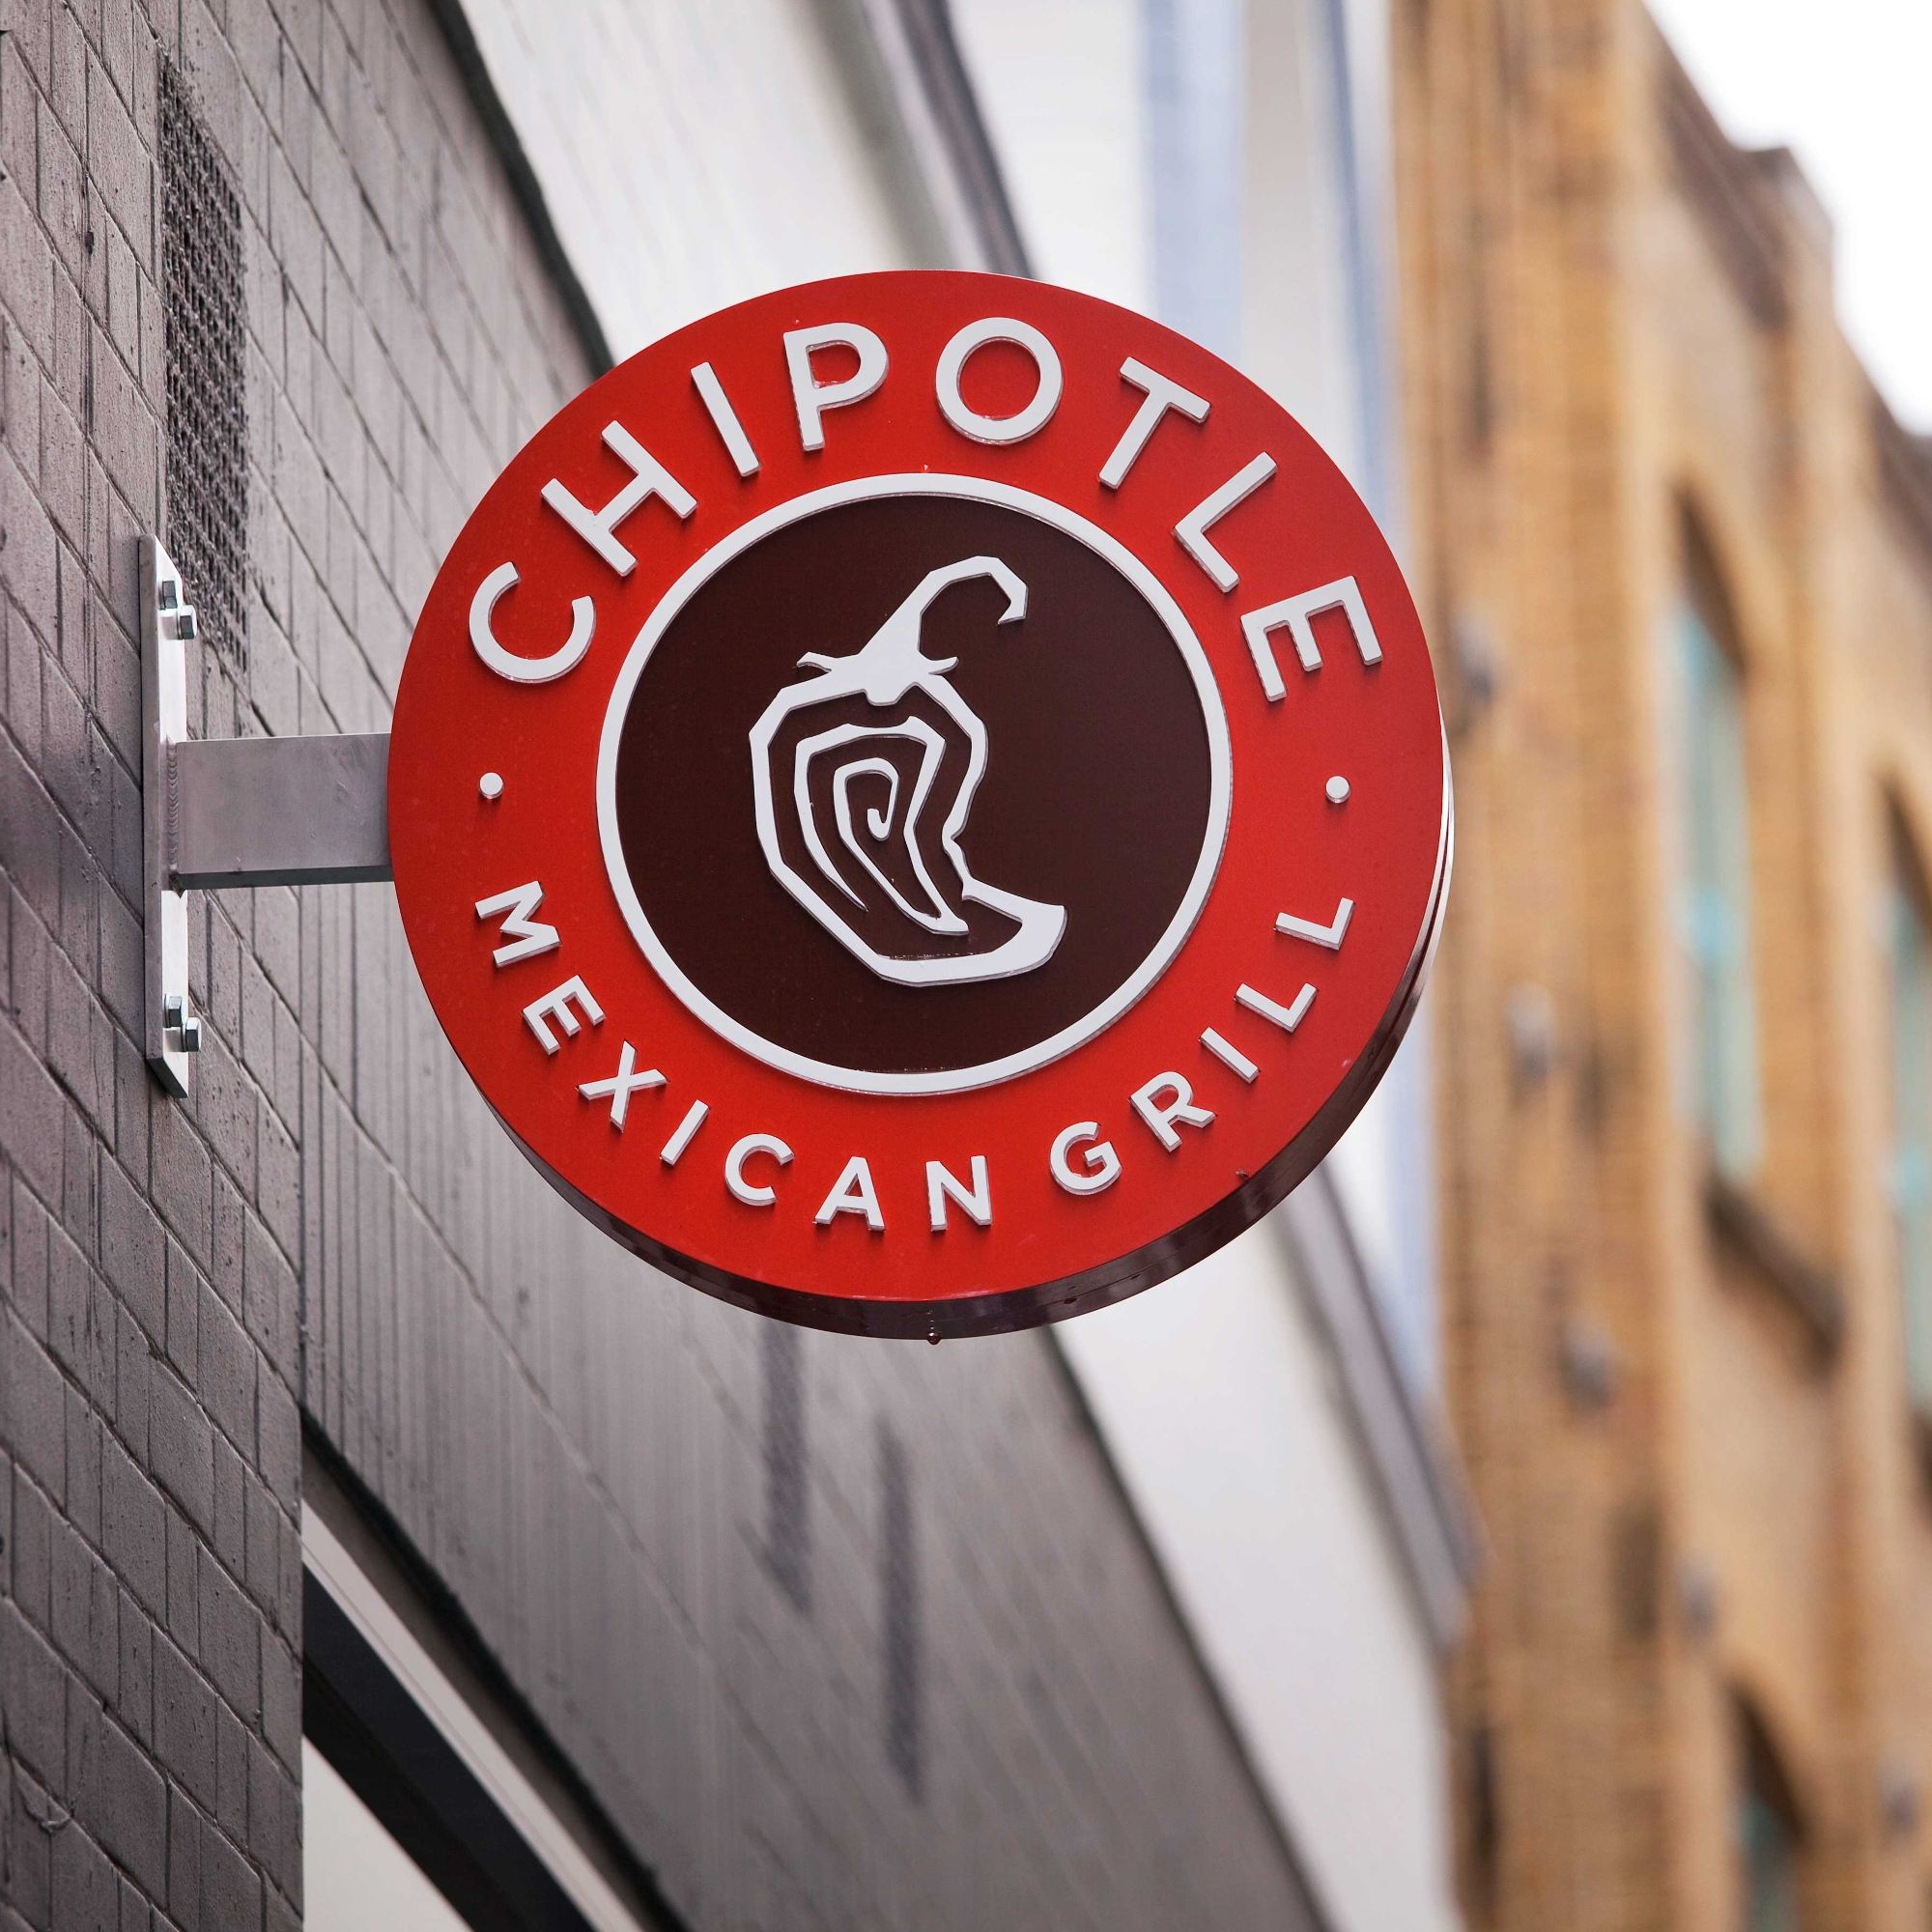 Market Research Companies >> Chipotle Settles Illness Claims Of 100+ Customers